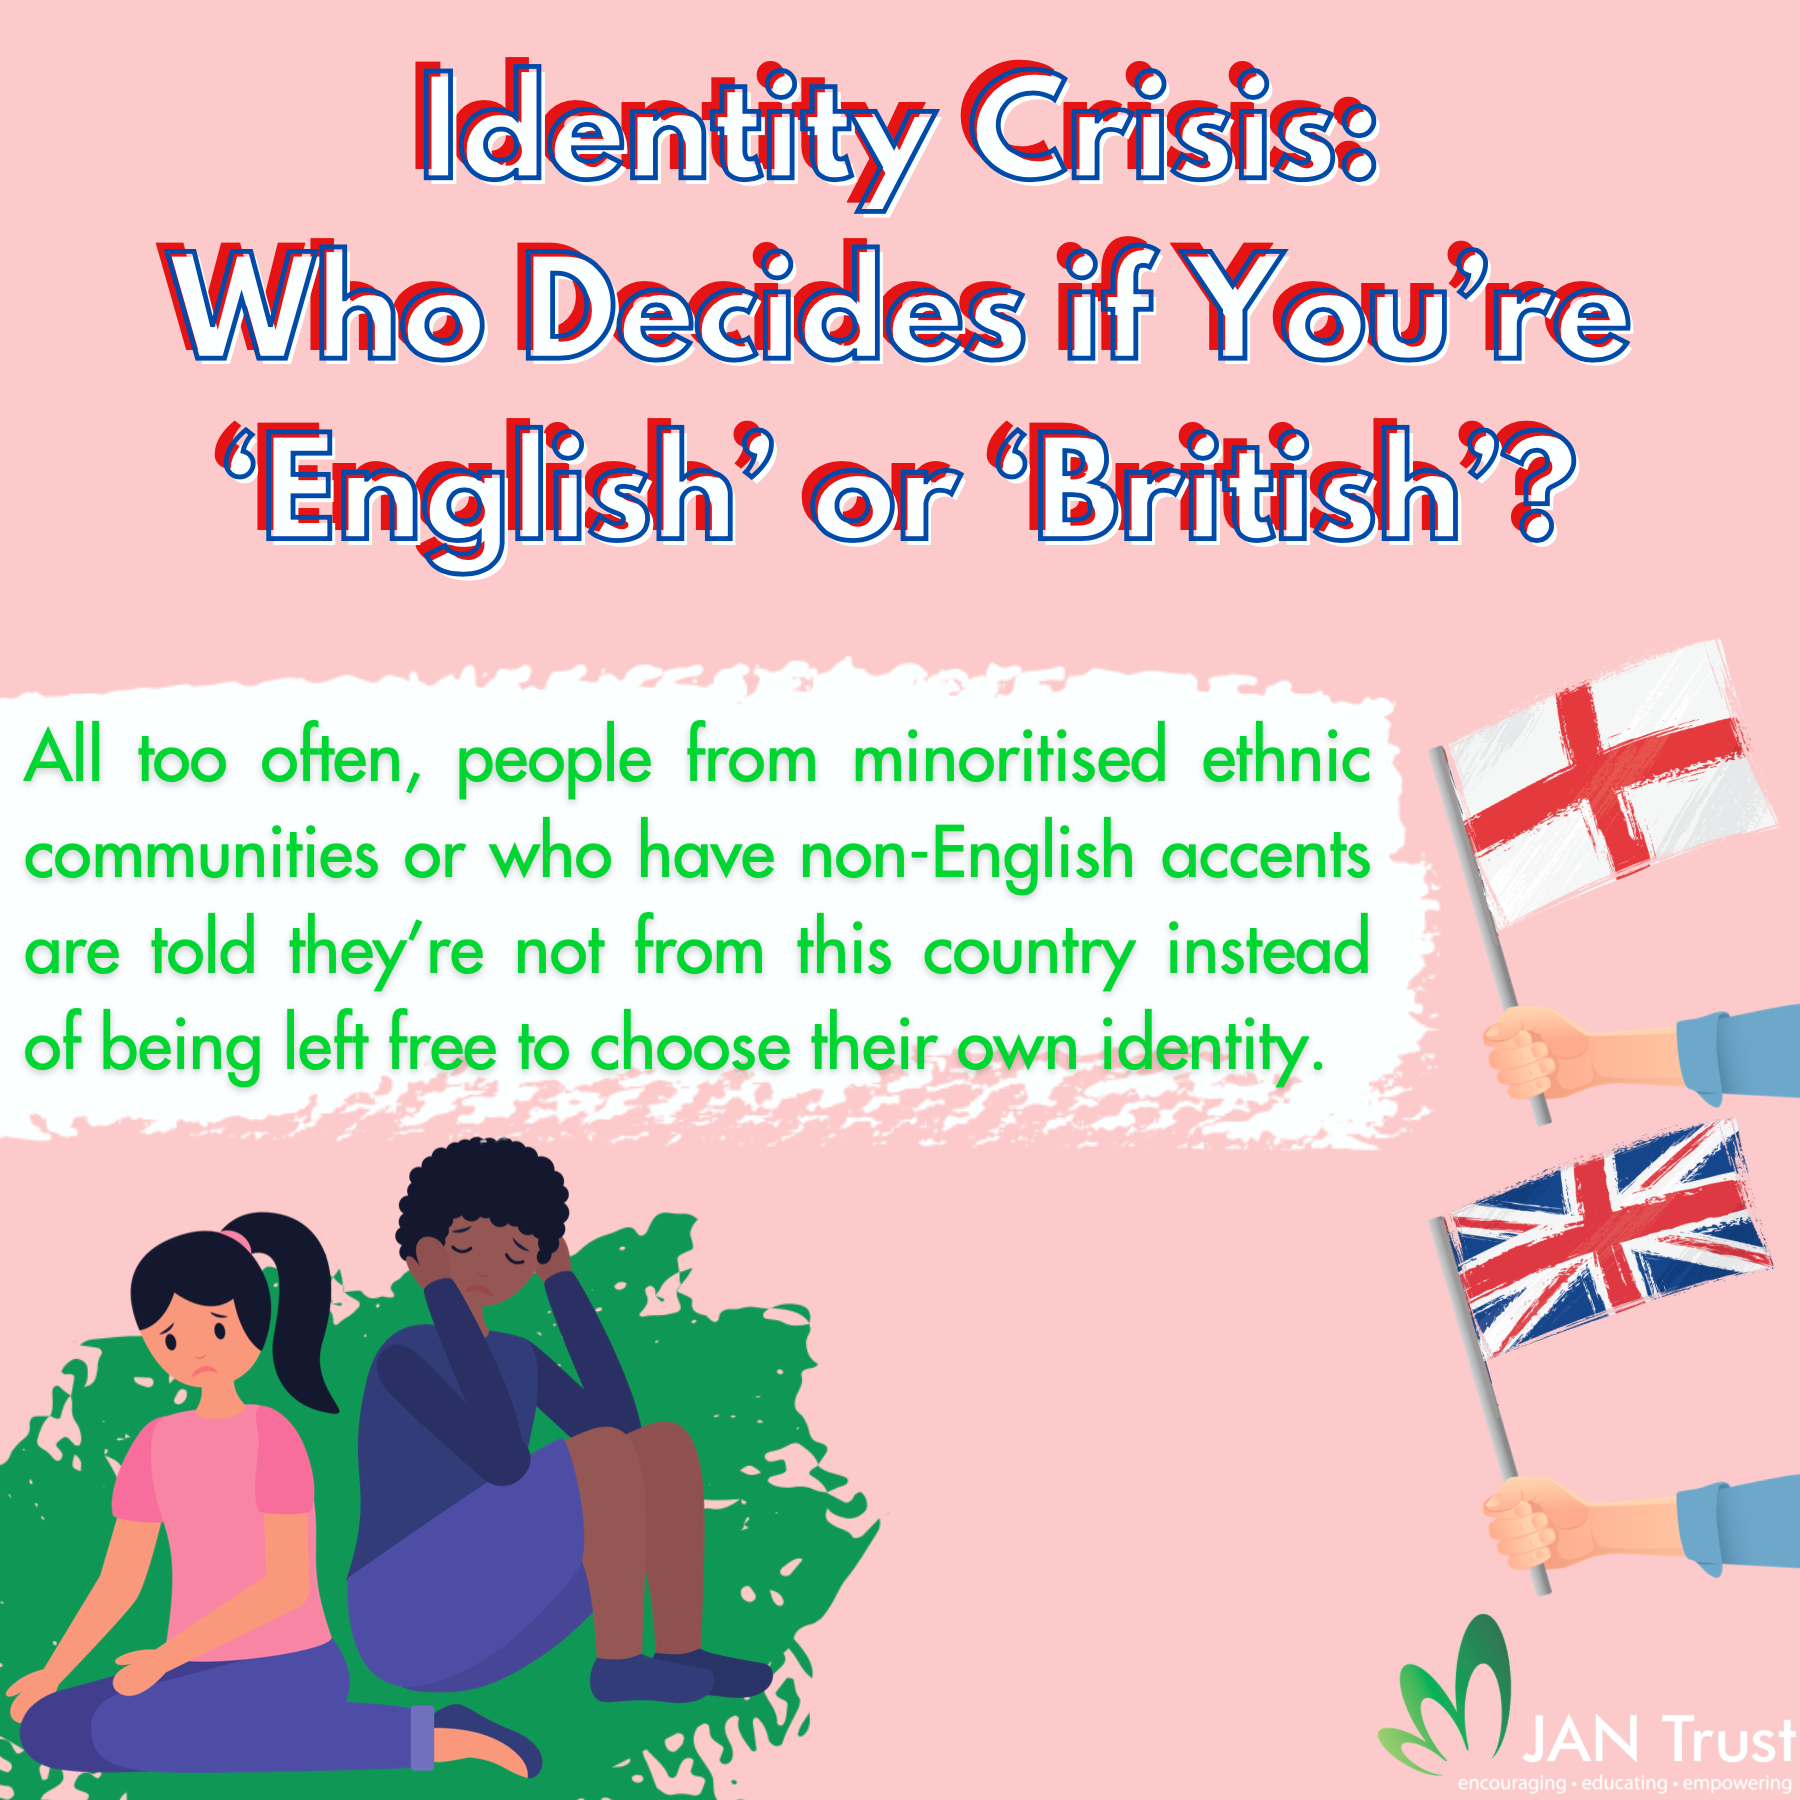 Identity crisis: who decides if you're 'English' or 'British'?